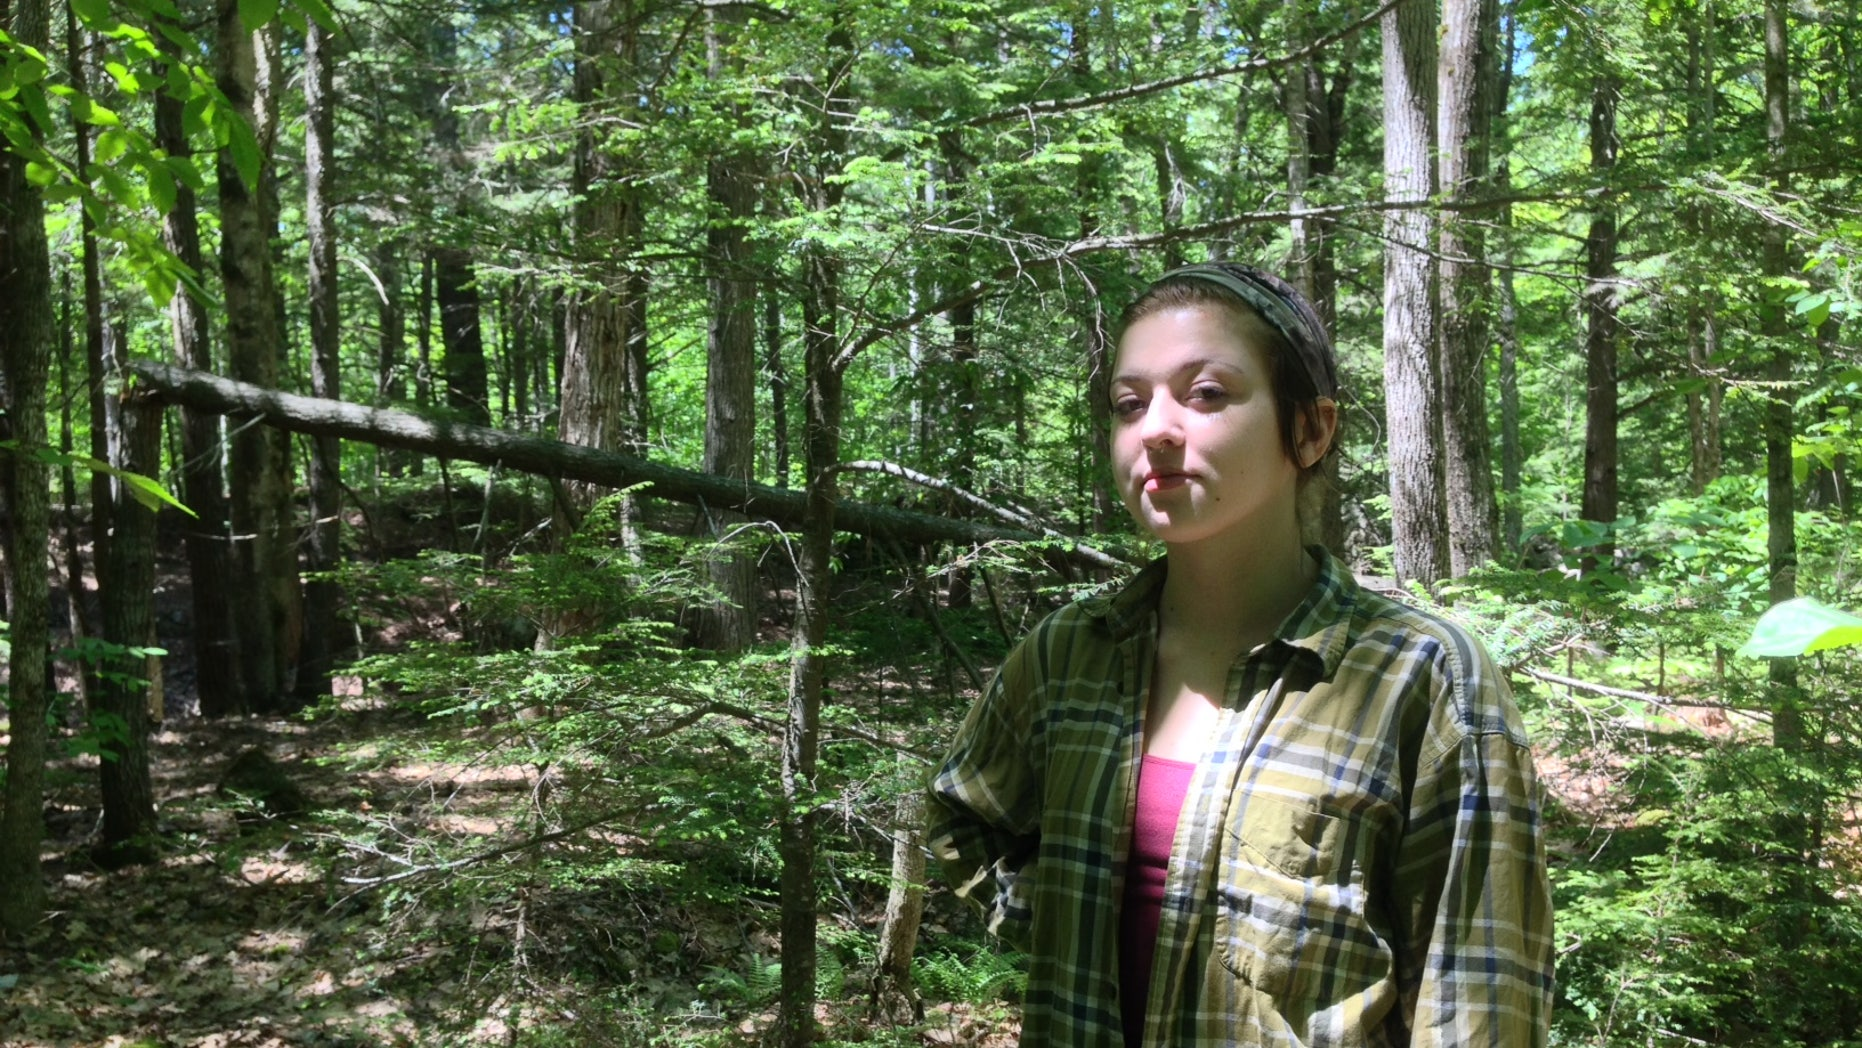 Rachel Borch, 21, stands in the woods near her home in Hope. Borch was attacked while on a jog in woods near her home by a rabid raccoon and had to drown the animal in self defense. (Alex Acquisto, Bangor Daily News)